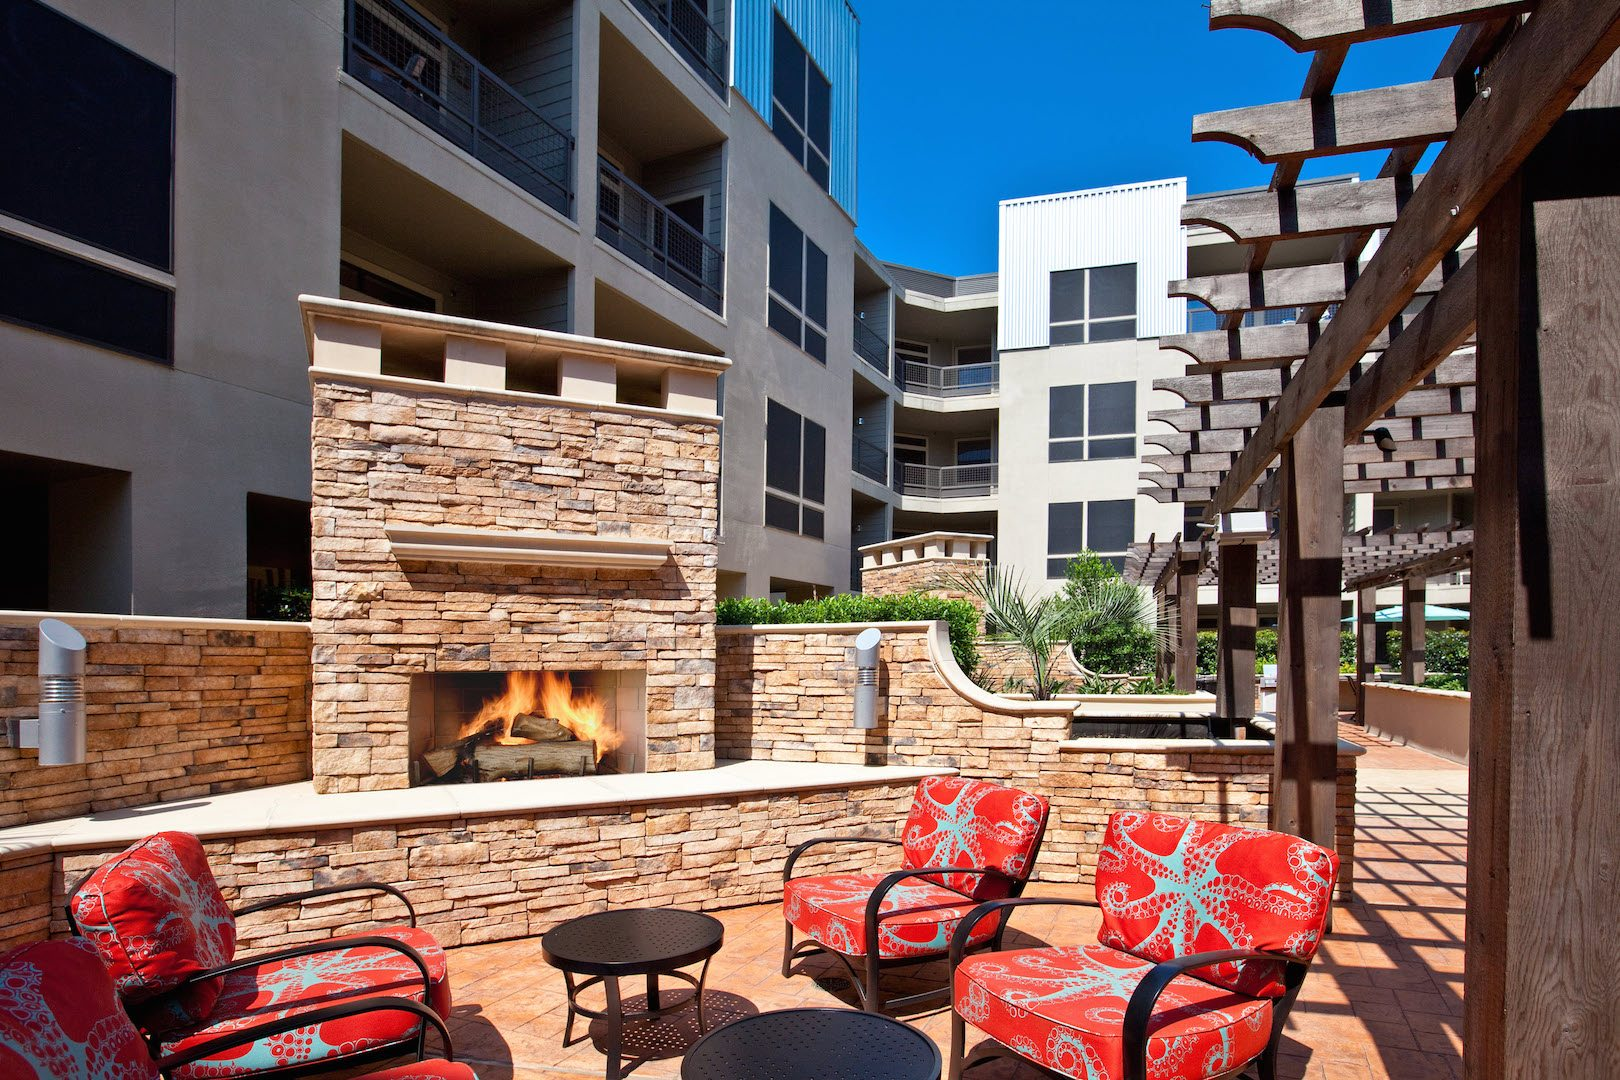 singleliving in style one bedroom apartments in houston